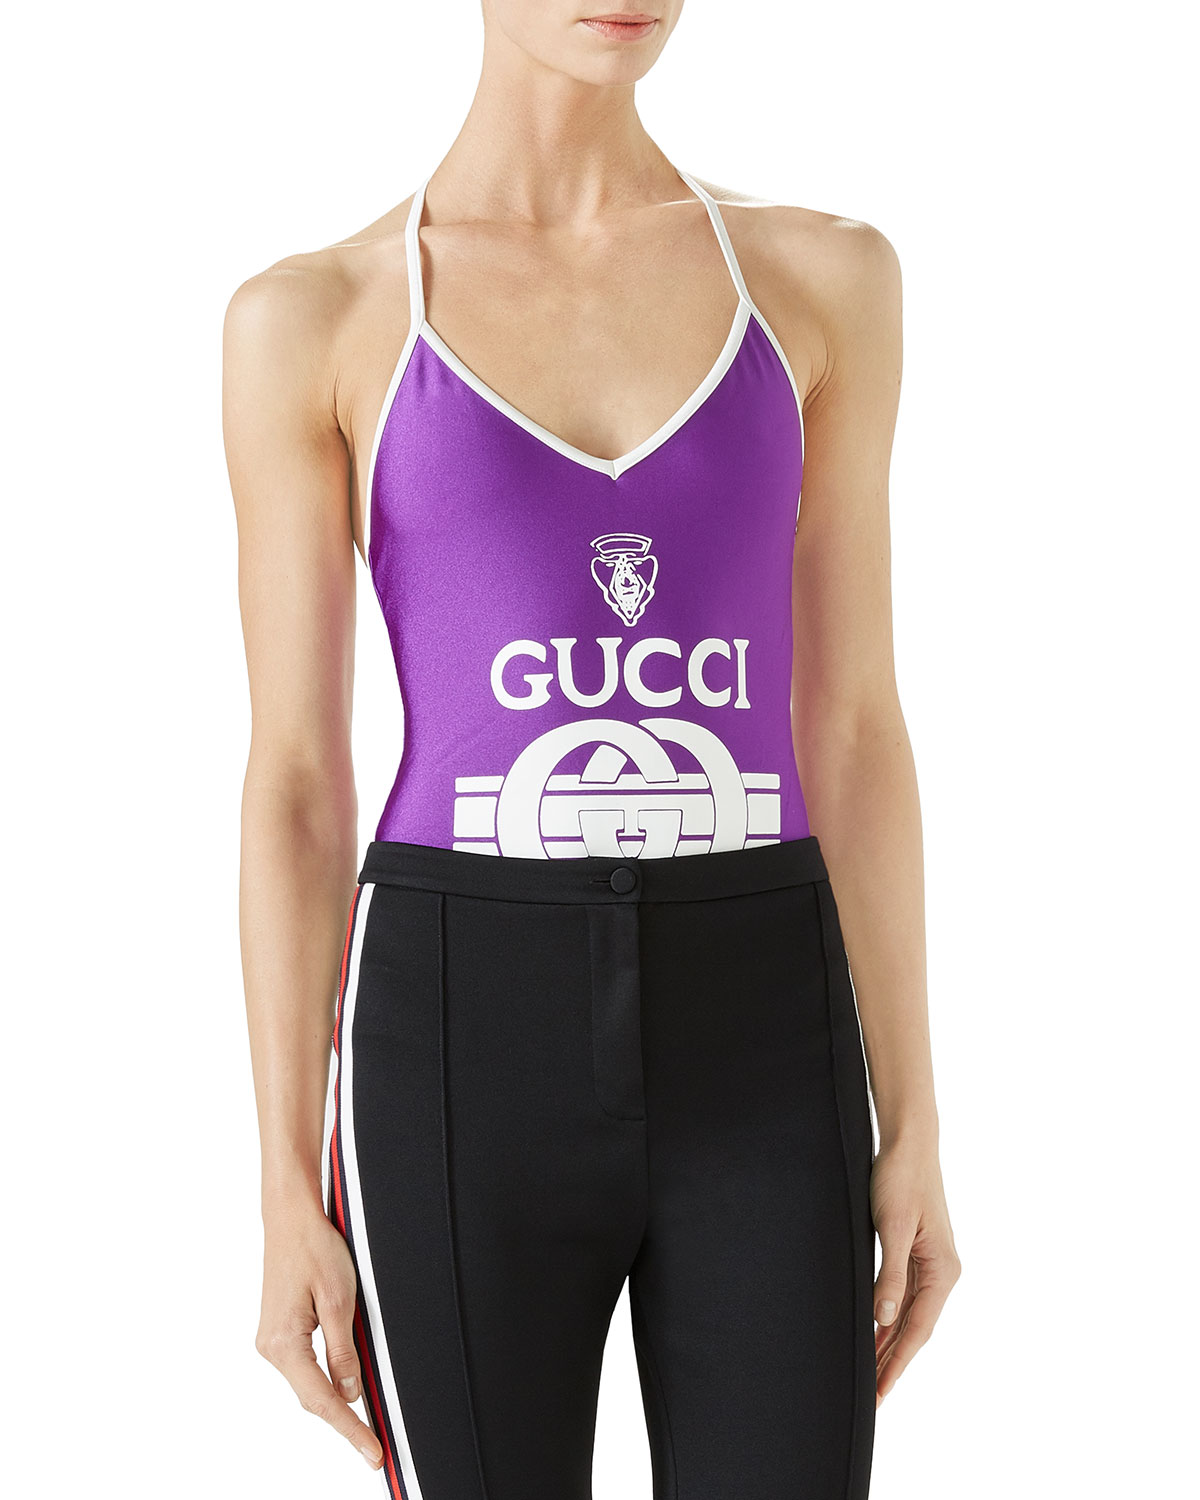 0523592d One-Piece Swimsuit in Sparkling Lycra® w/ Gucci Print